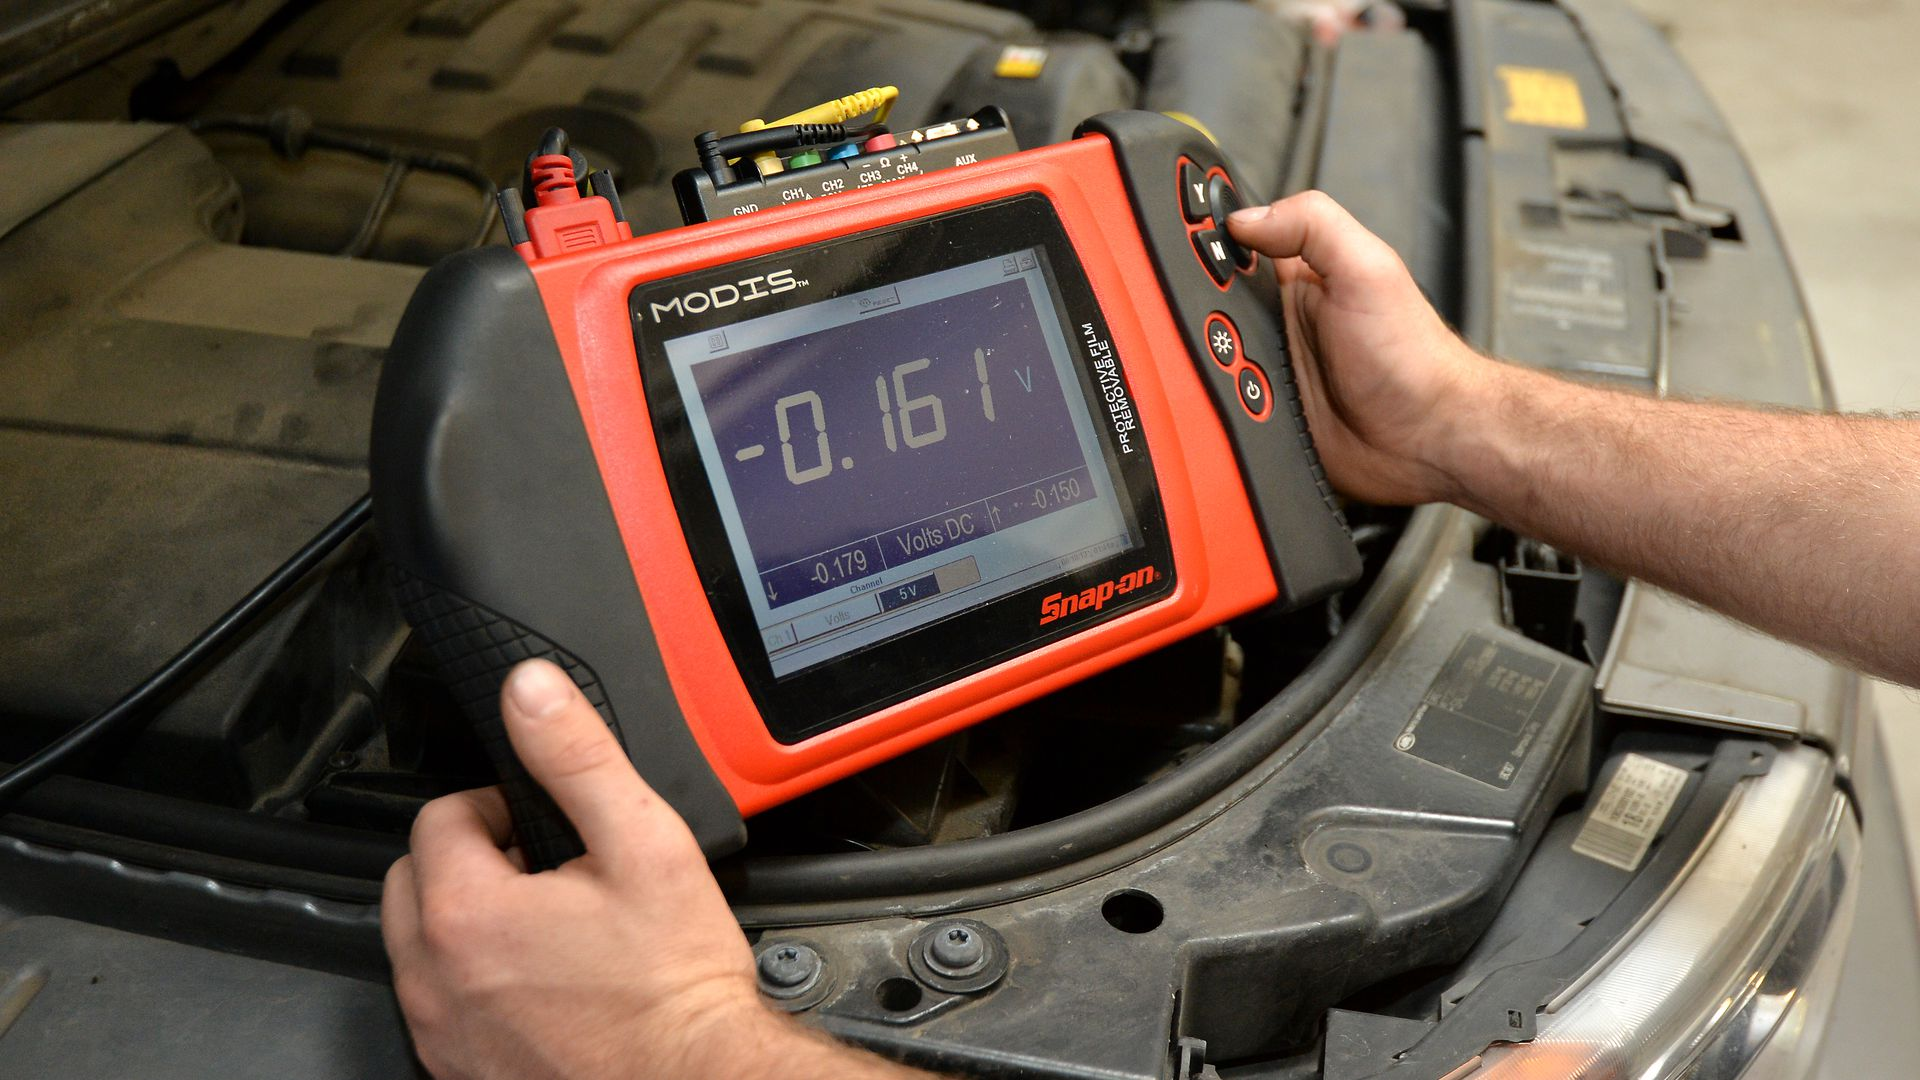 AV diagnostic systems needed for road safety but easy to